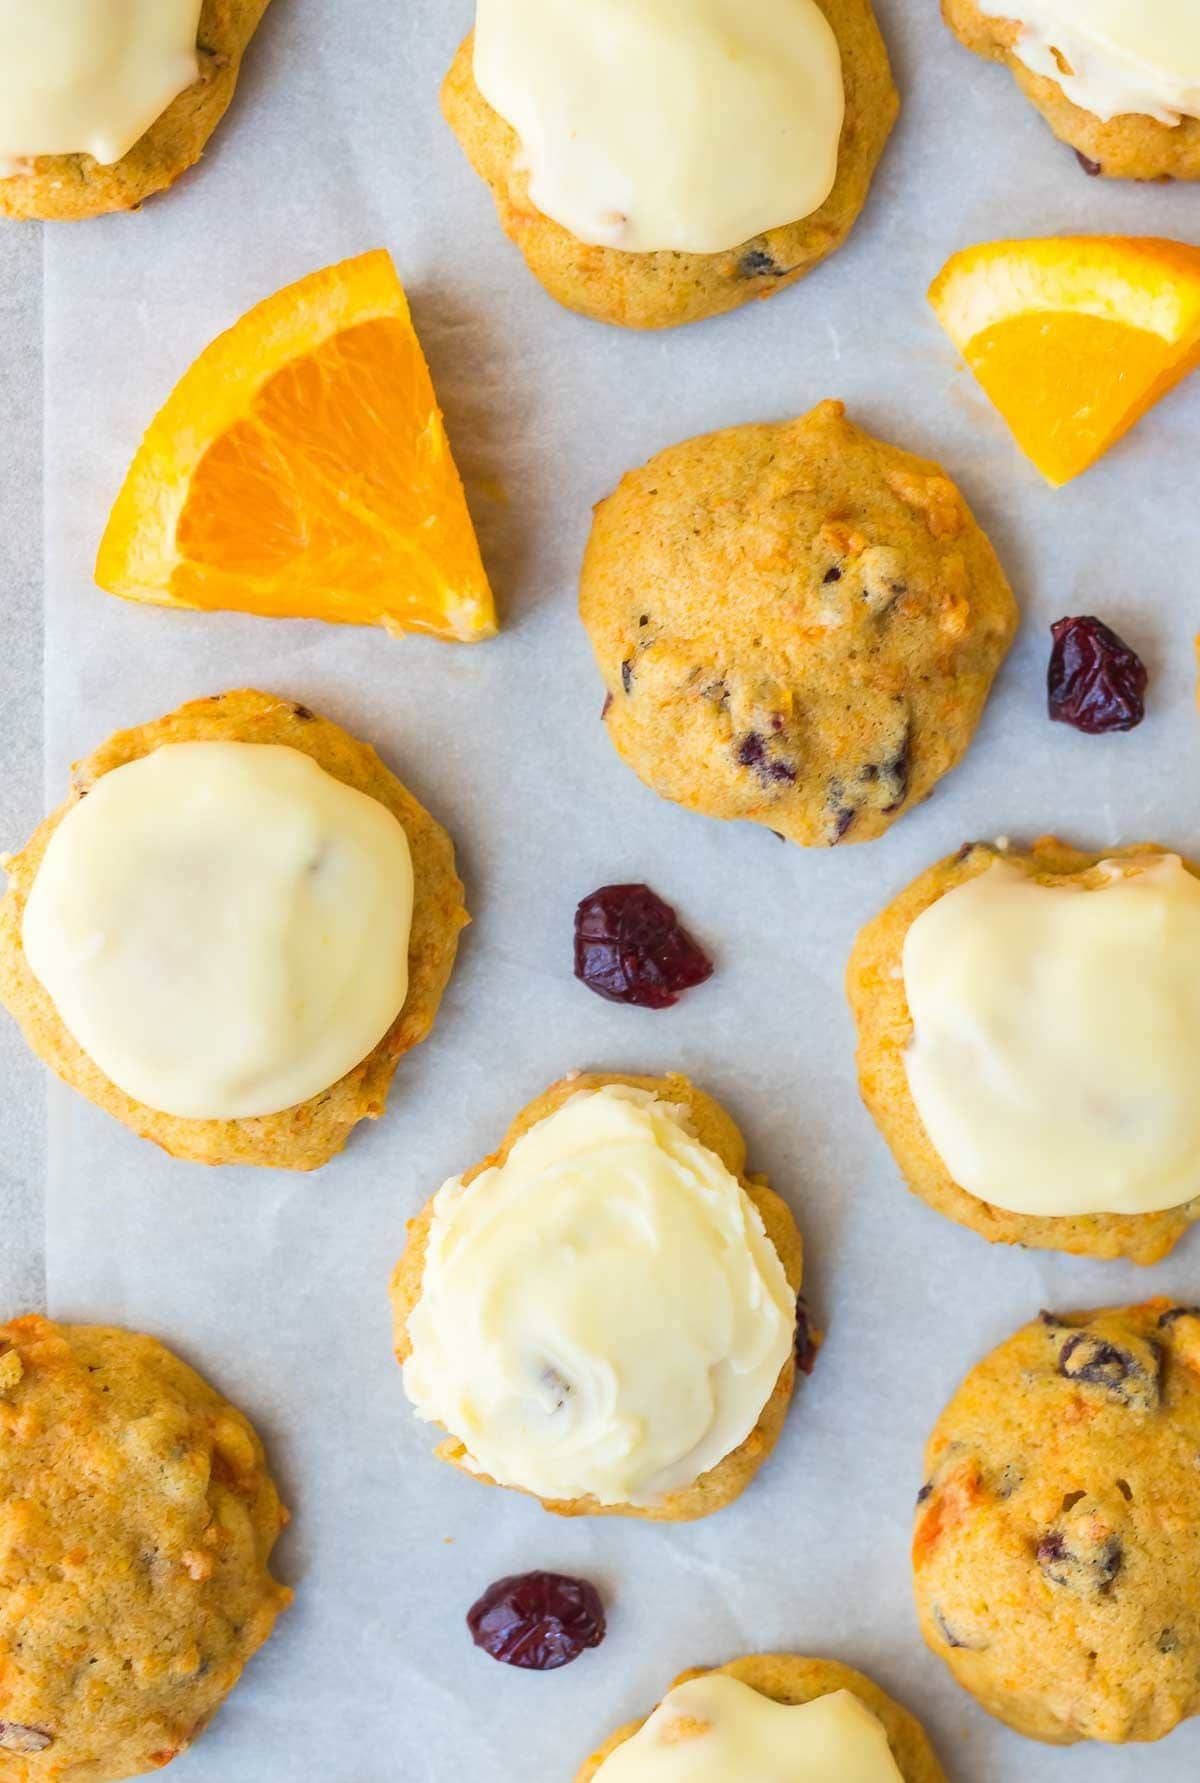 Frosted Orange Cookies with Cranberries. MELT IN YOUR MOUTH. Super soft and easy to make! Perfect for Christmas or anytime you want to bake. Recipe at wellplated.com   @wellplated